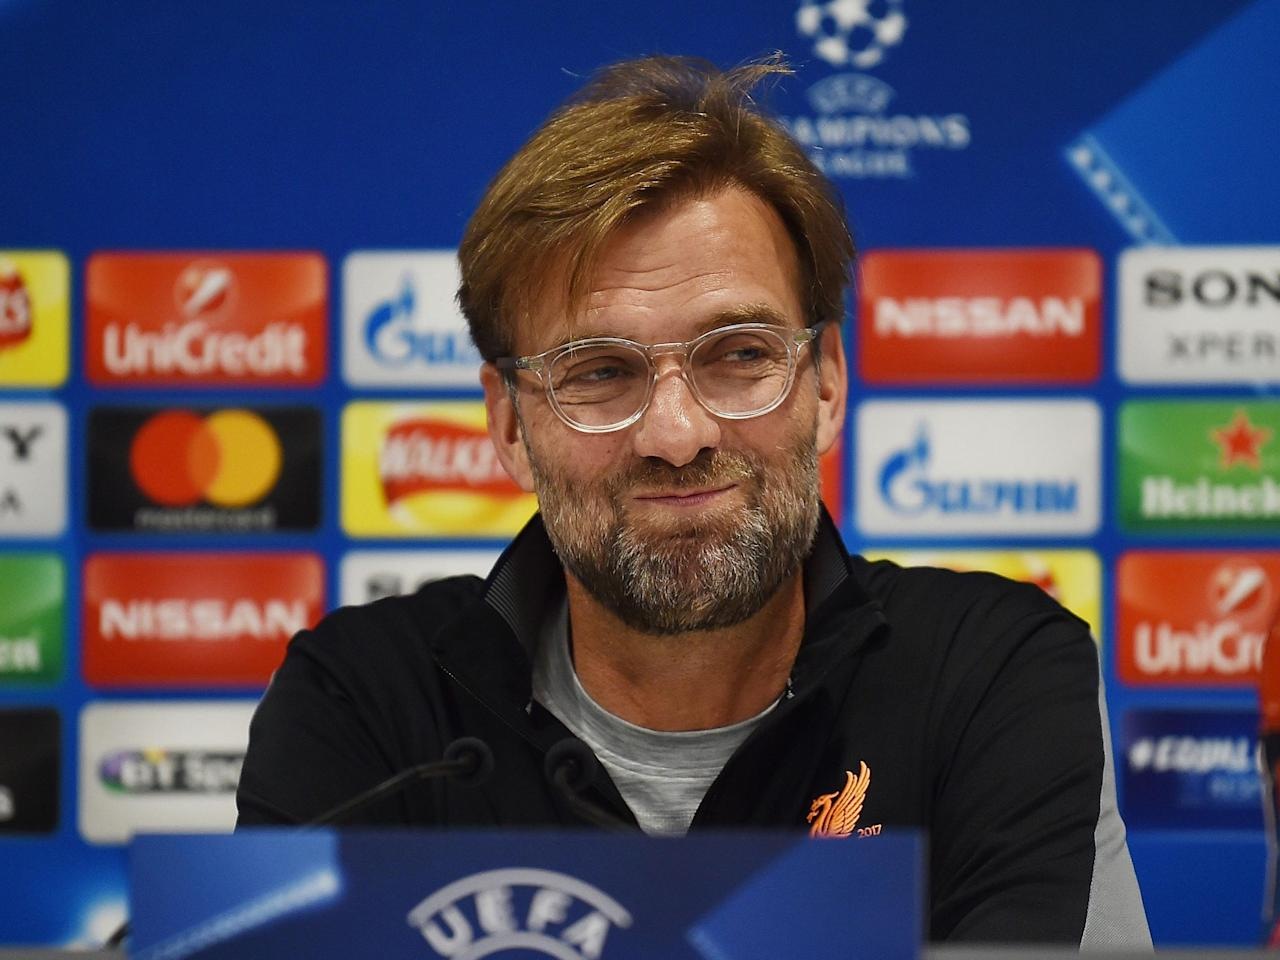 Liverpool vs Roma: Watch Jurgen Klopp's press conference LIVE ahead of huge Champions League clash